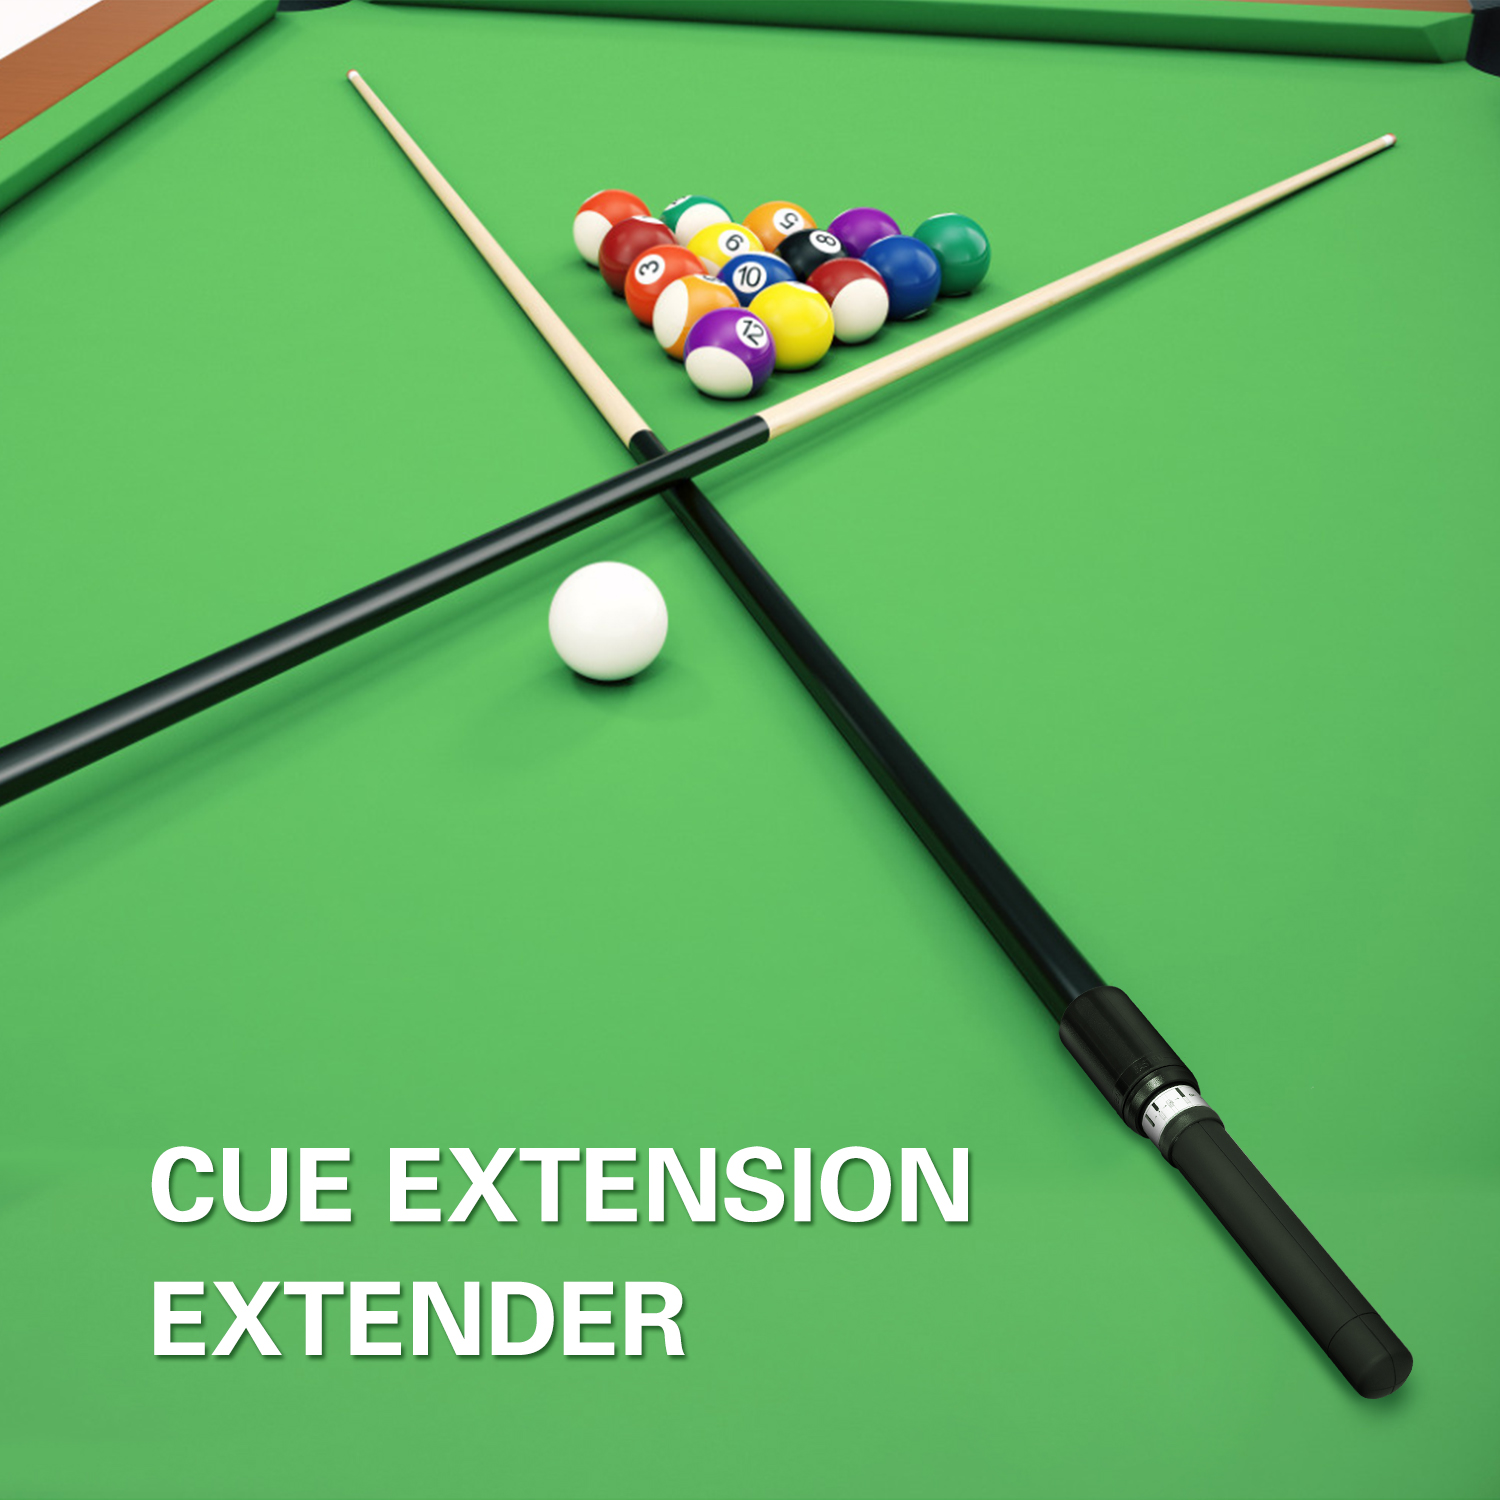 Black White Pool Cue Extension Extender Indoor Entertainment Telescopic Cue Extension for Billiard Pool Cues